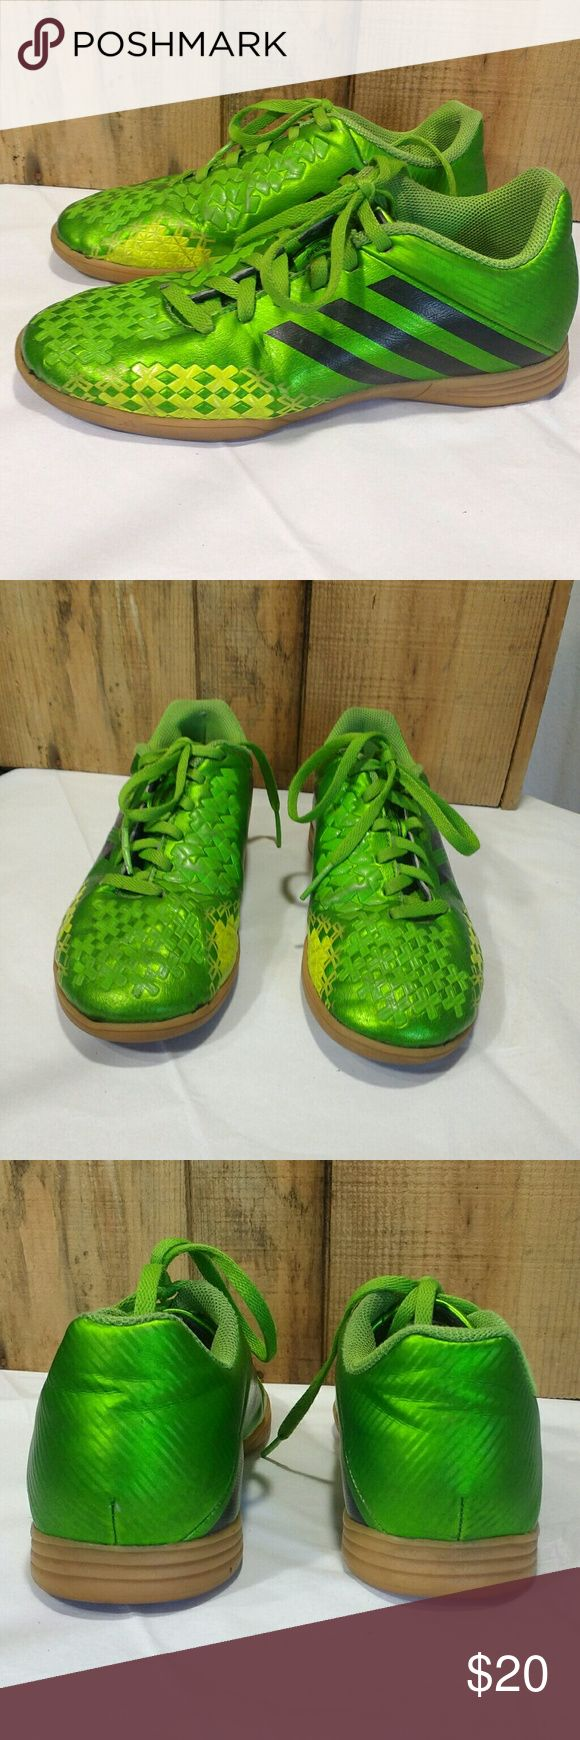 Adidas Predito Sneakers, Very Solid Condition!! Adidas Predito Sneakers, Very Solid Condition!! Adidas Shoes Sneakers